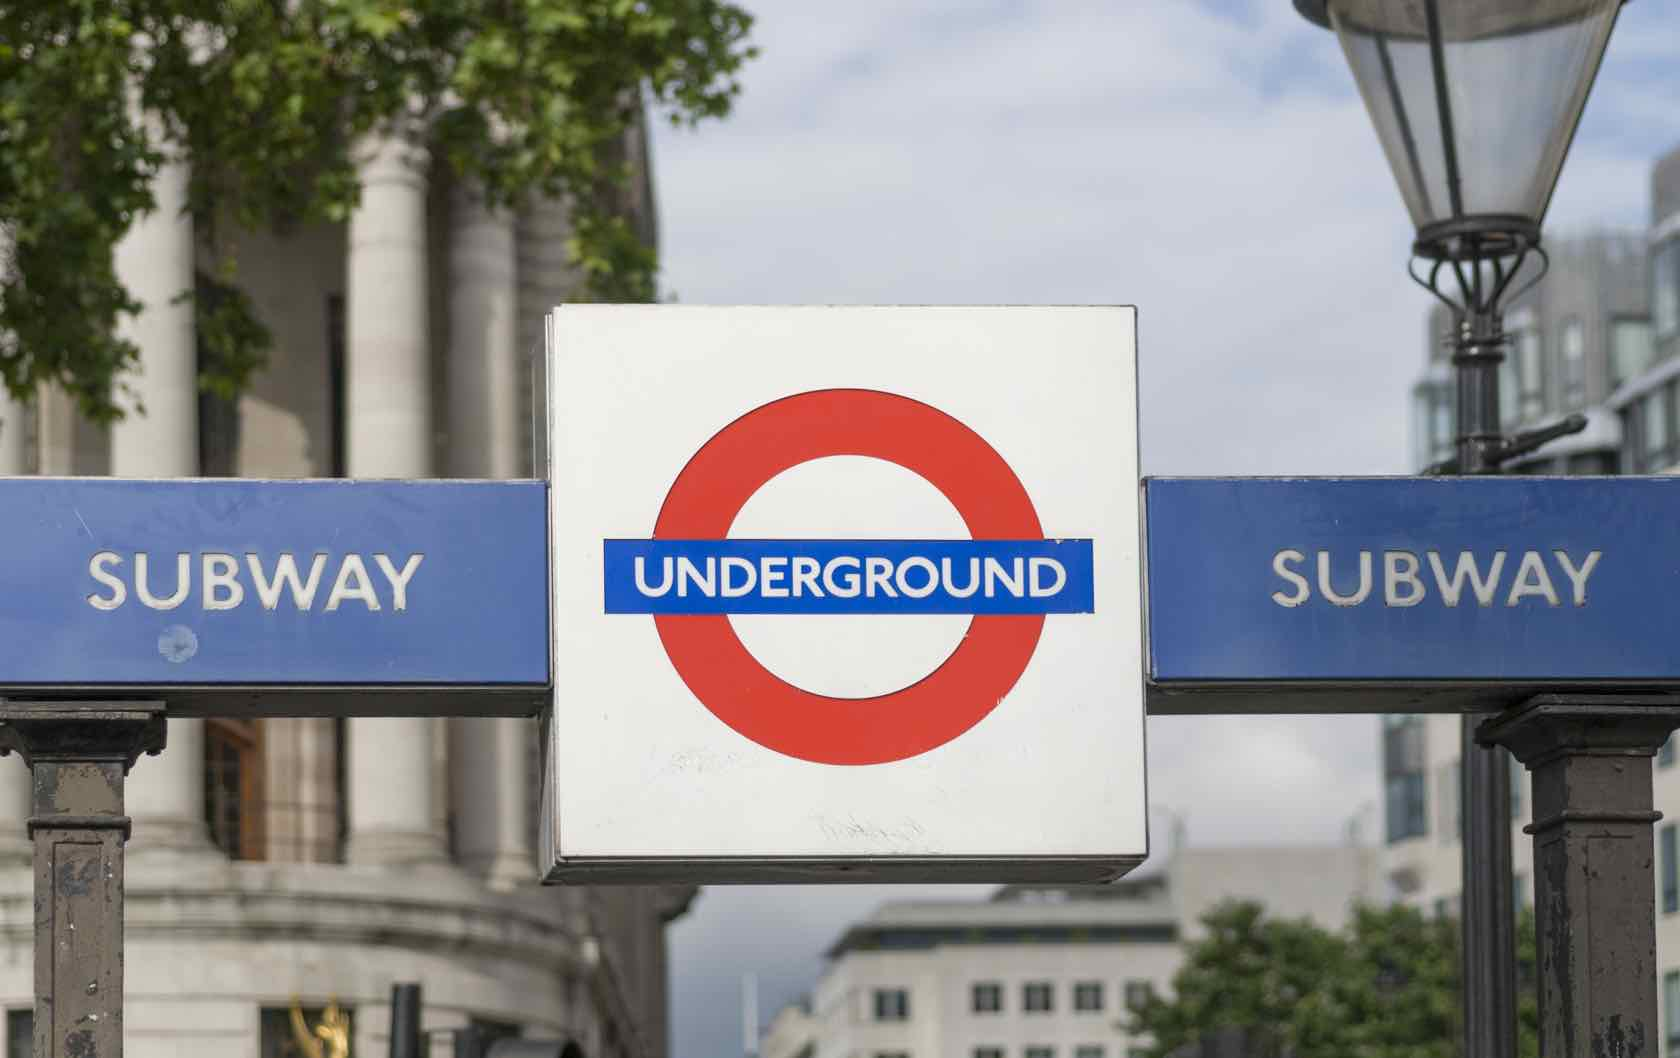 Taking the Tube: 8 Tips For Riding the London Underground